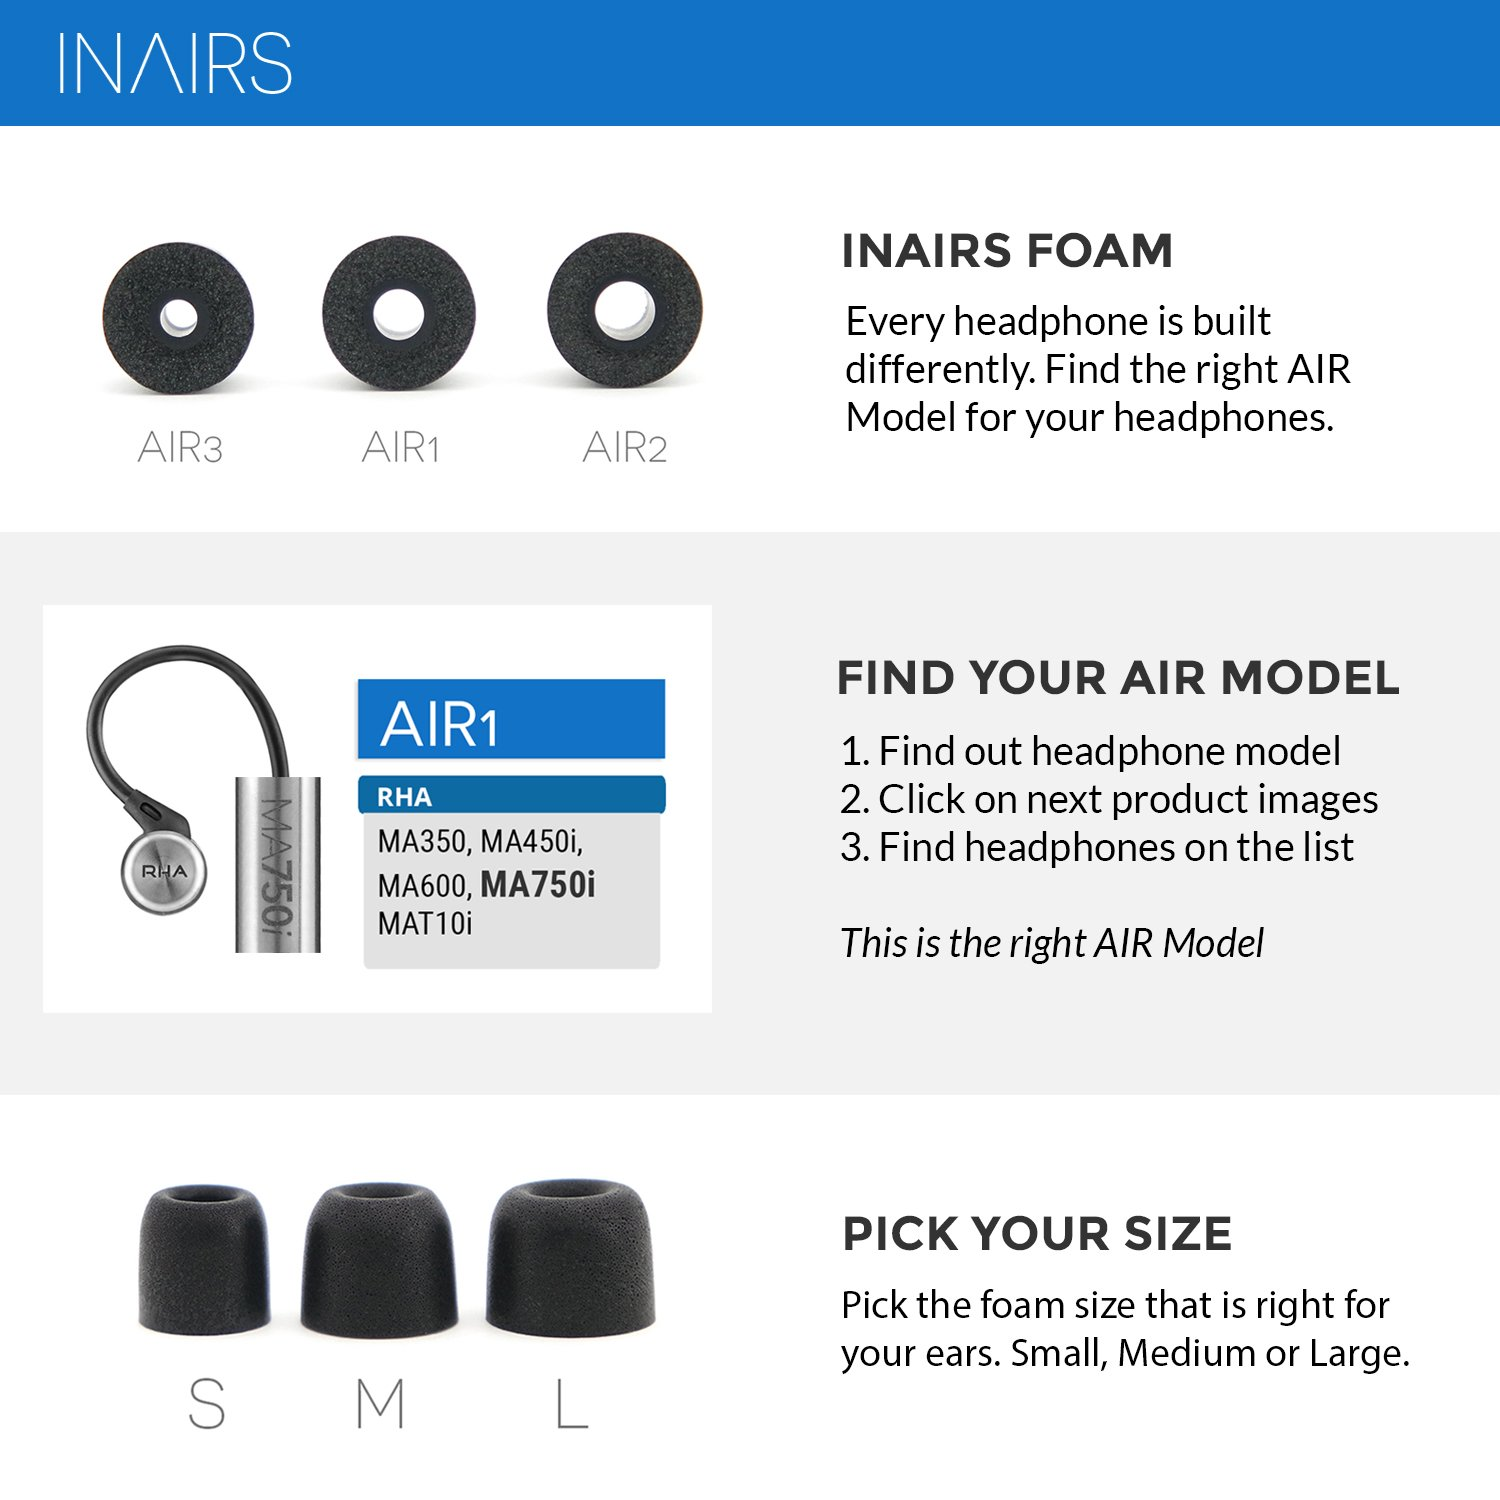 Noise Isolation Earphone Cushions for In Ear bud /& Headphone Memory Foam Earpad S//M//L IN/ΛIRS AIR3 - 3 Pairs of Effective Noise Cancelling In Ear Foam Tips Rich Bass Replacement for Silicone bud